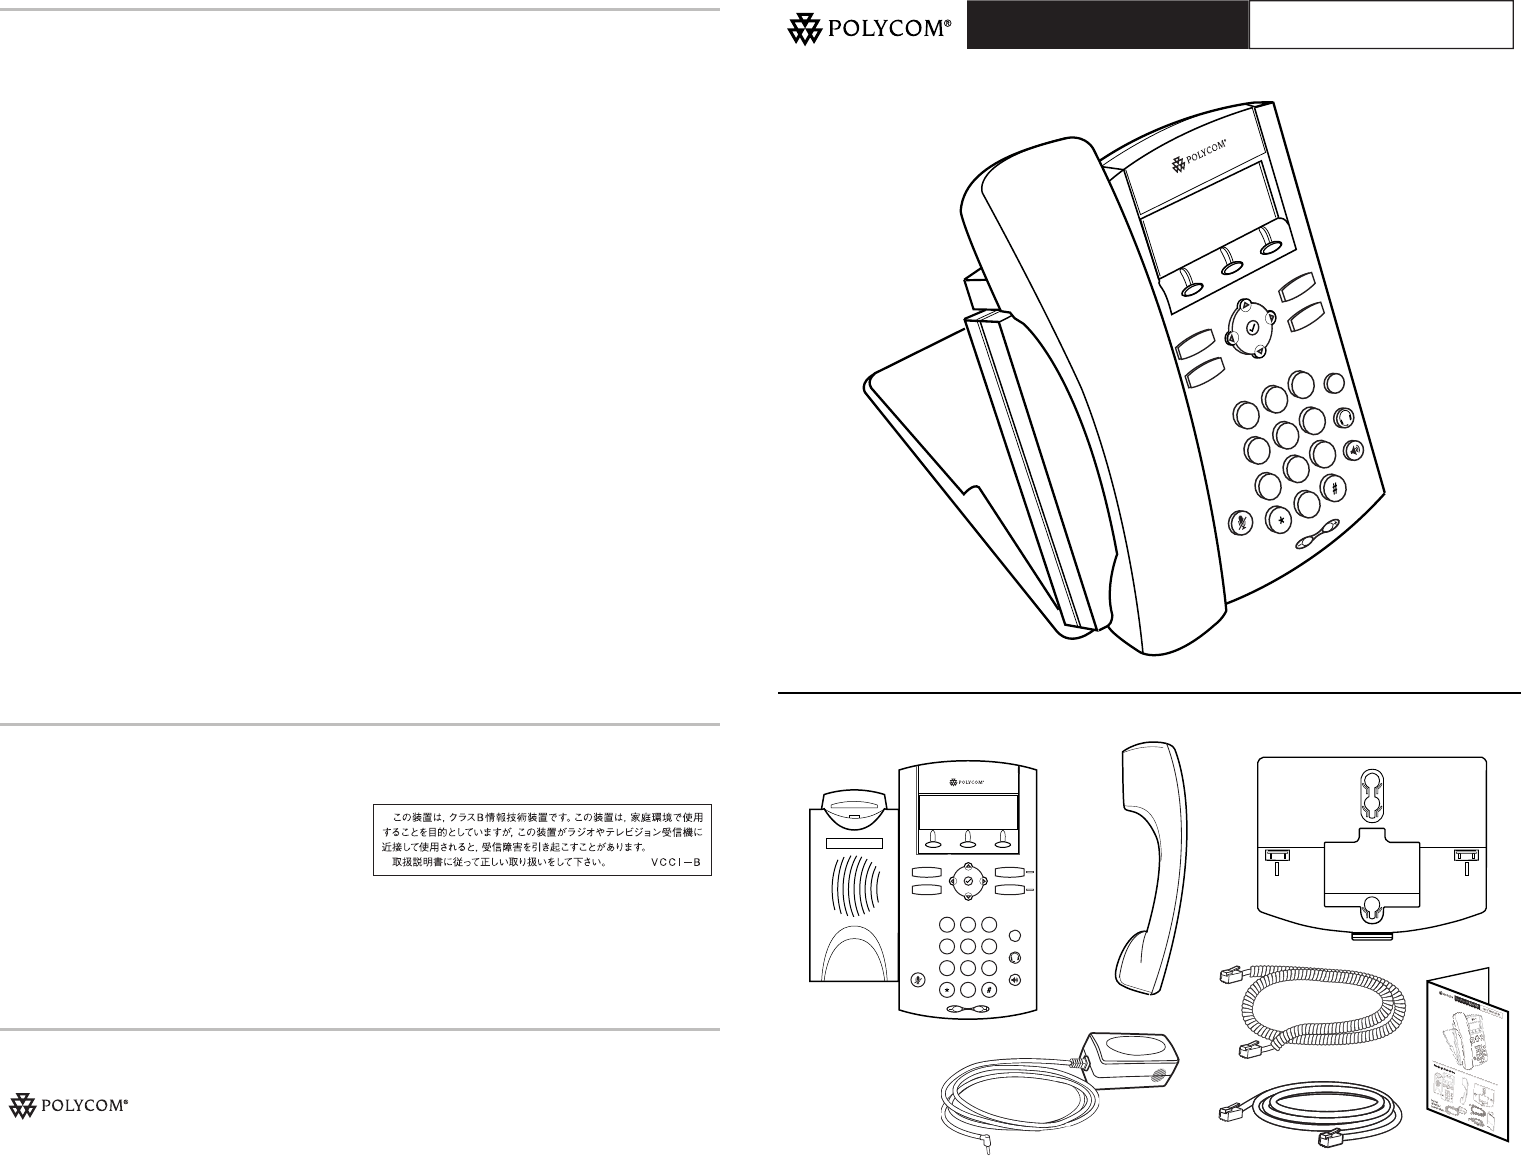 Polycom Cordless Telephone IP 335 User Guide